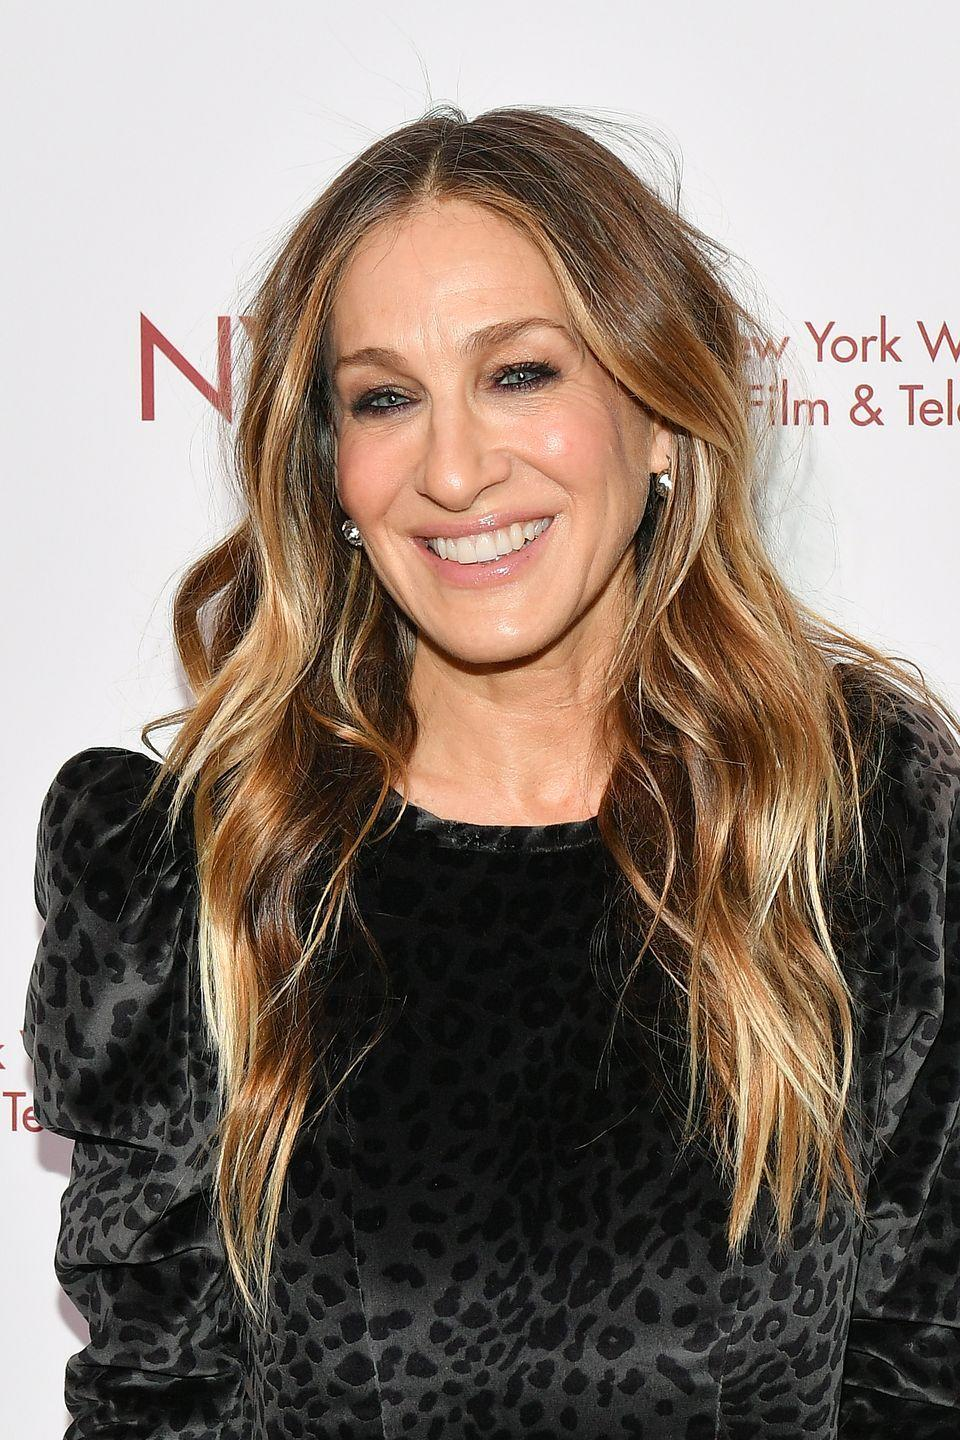 """<p>Despite being a busy working mom, SJP has one of the best bodies around. Her trainer, Marc Santa Maria, says she does this <a href=""""https://people.com/style/celeb-trainers-reveal-how-stars-stay-svelte/"""" rel=""""nofollow noopener"""" target=""""_blank"""" data-ylk=""""slk:push-up circuit"""" class=""""link rapid-noclick-resp"""">push-up circuit</a> on the reg.</p>"""